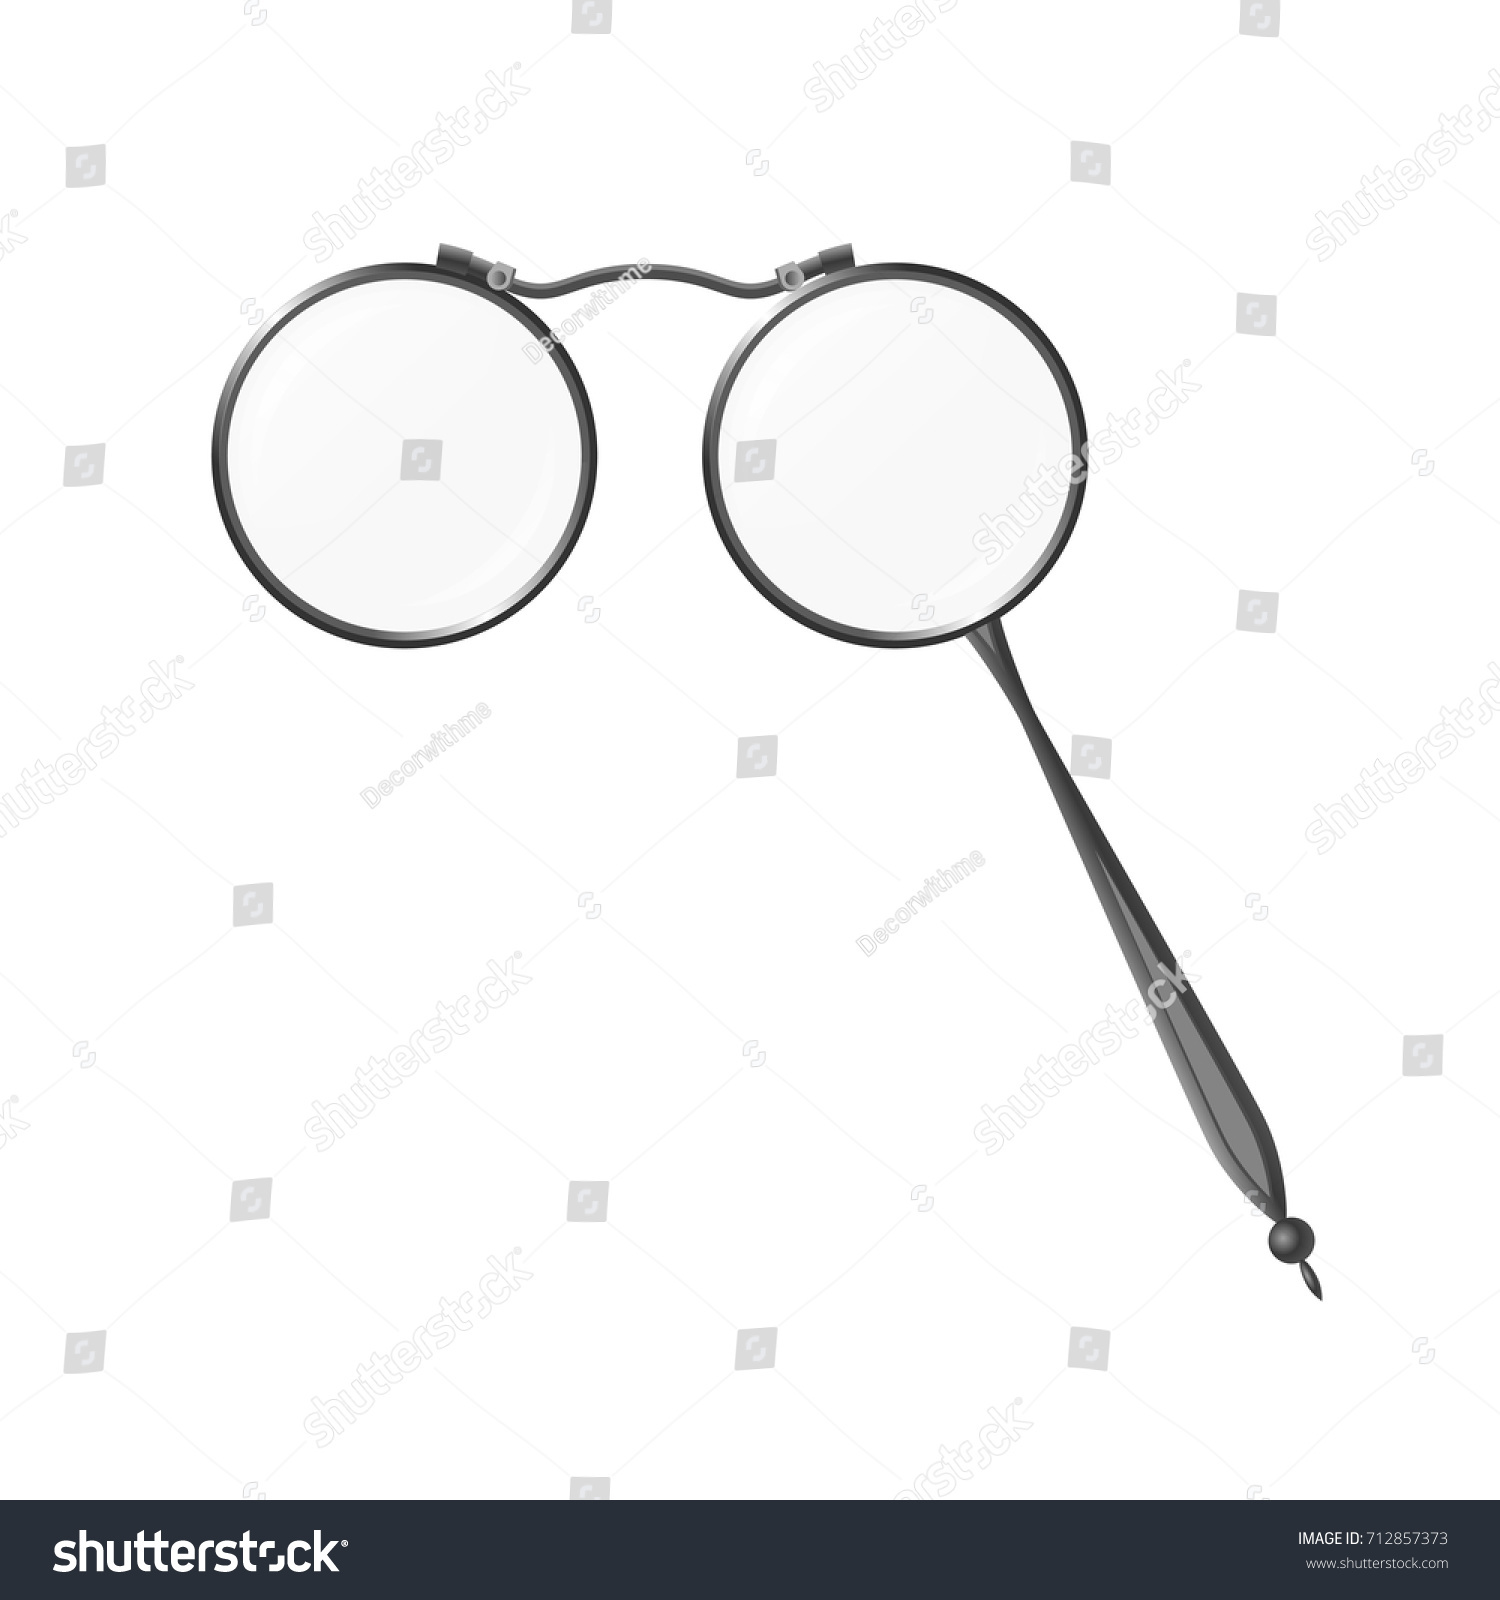 a156c3eb58 Vintage grey spectacles lorgnette - modern vector realistic isolated object  illustration on white background. Use